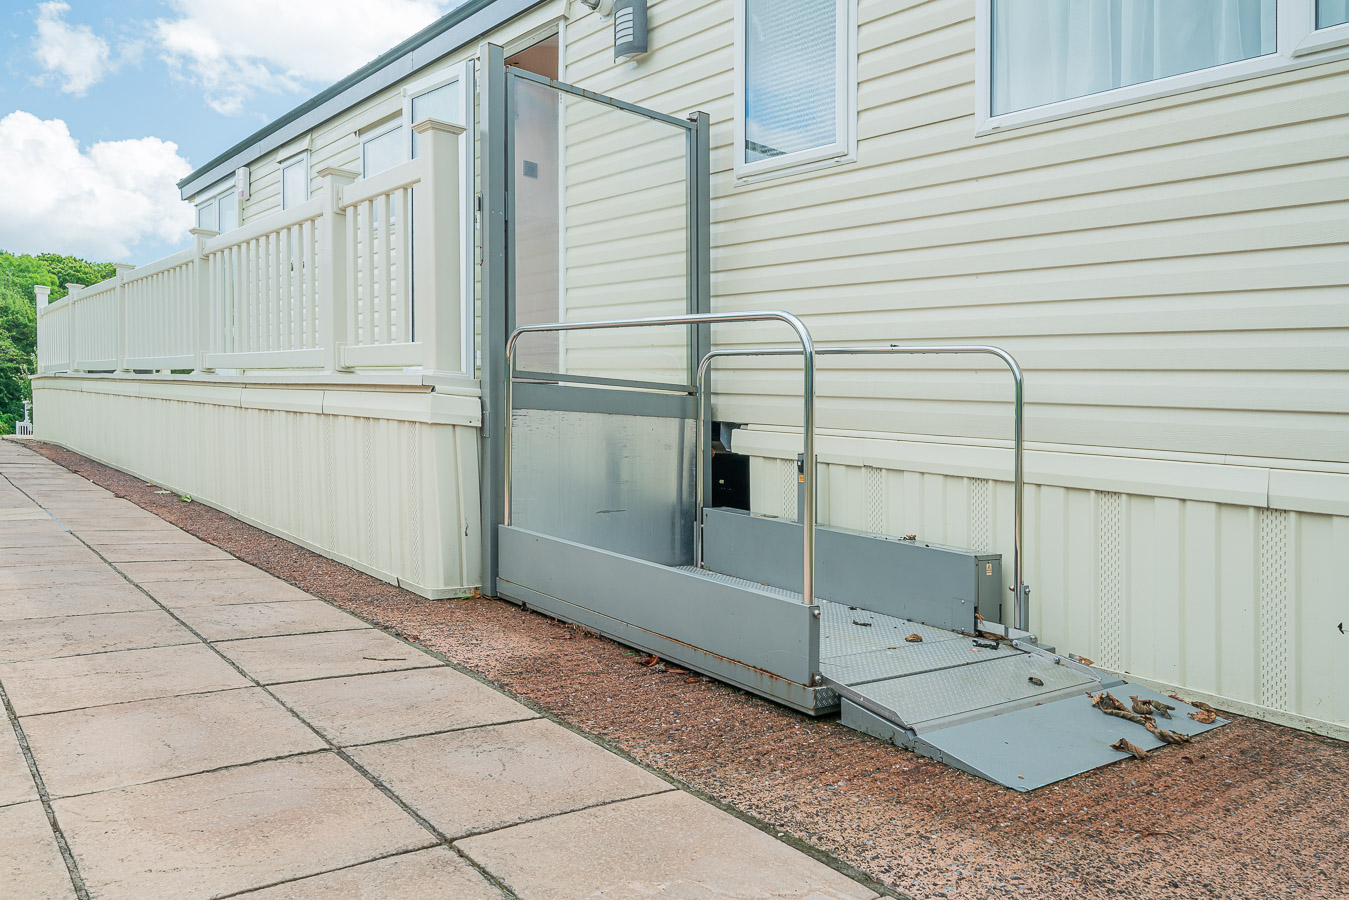 Monkton-Wyld-Static-Mobile-Holiday-Home-Sale-Plot-26-Charmouth-Lyme-Regis-West-Dorset-15